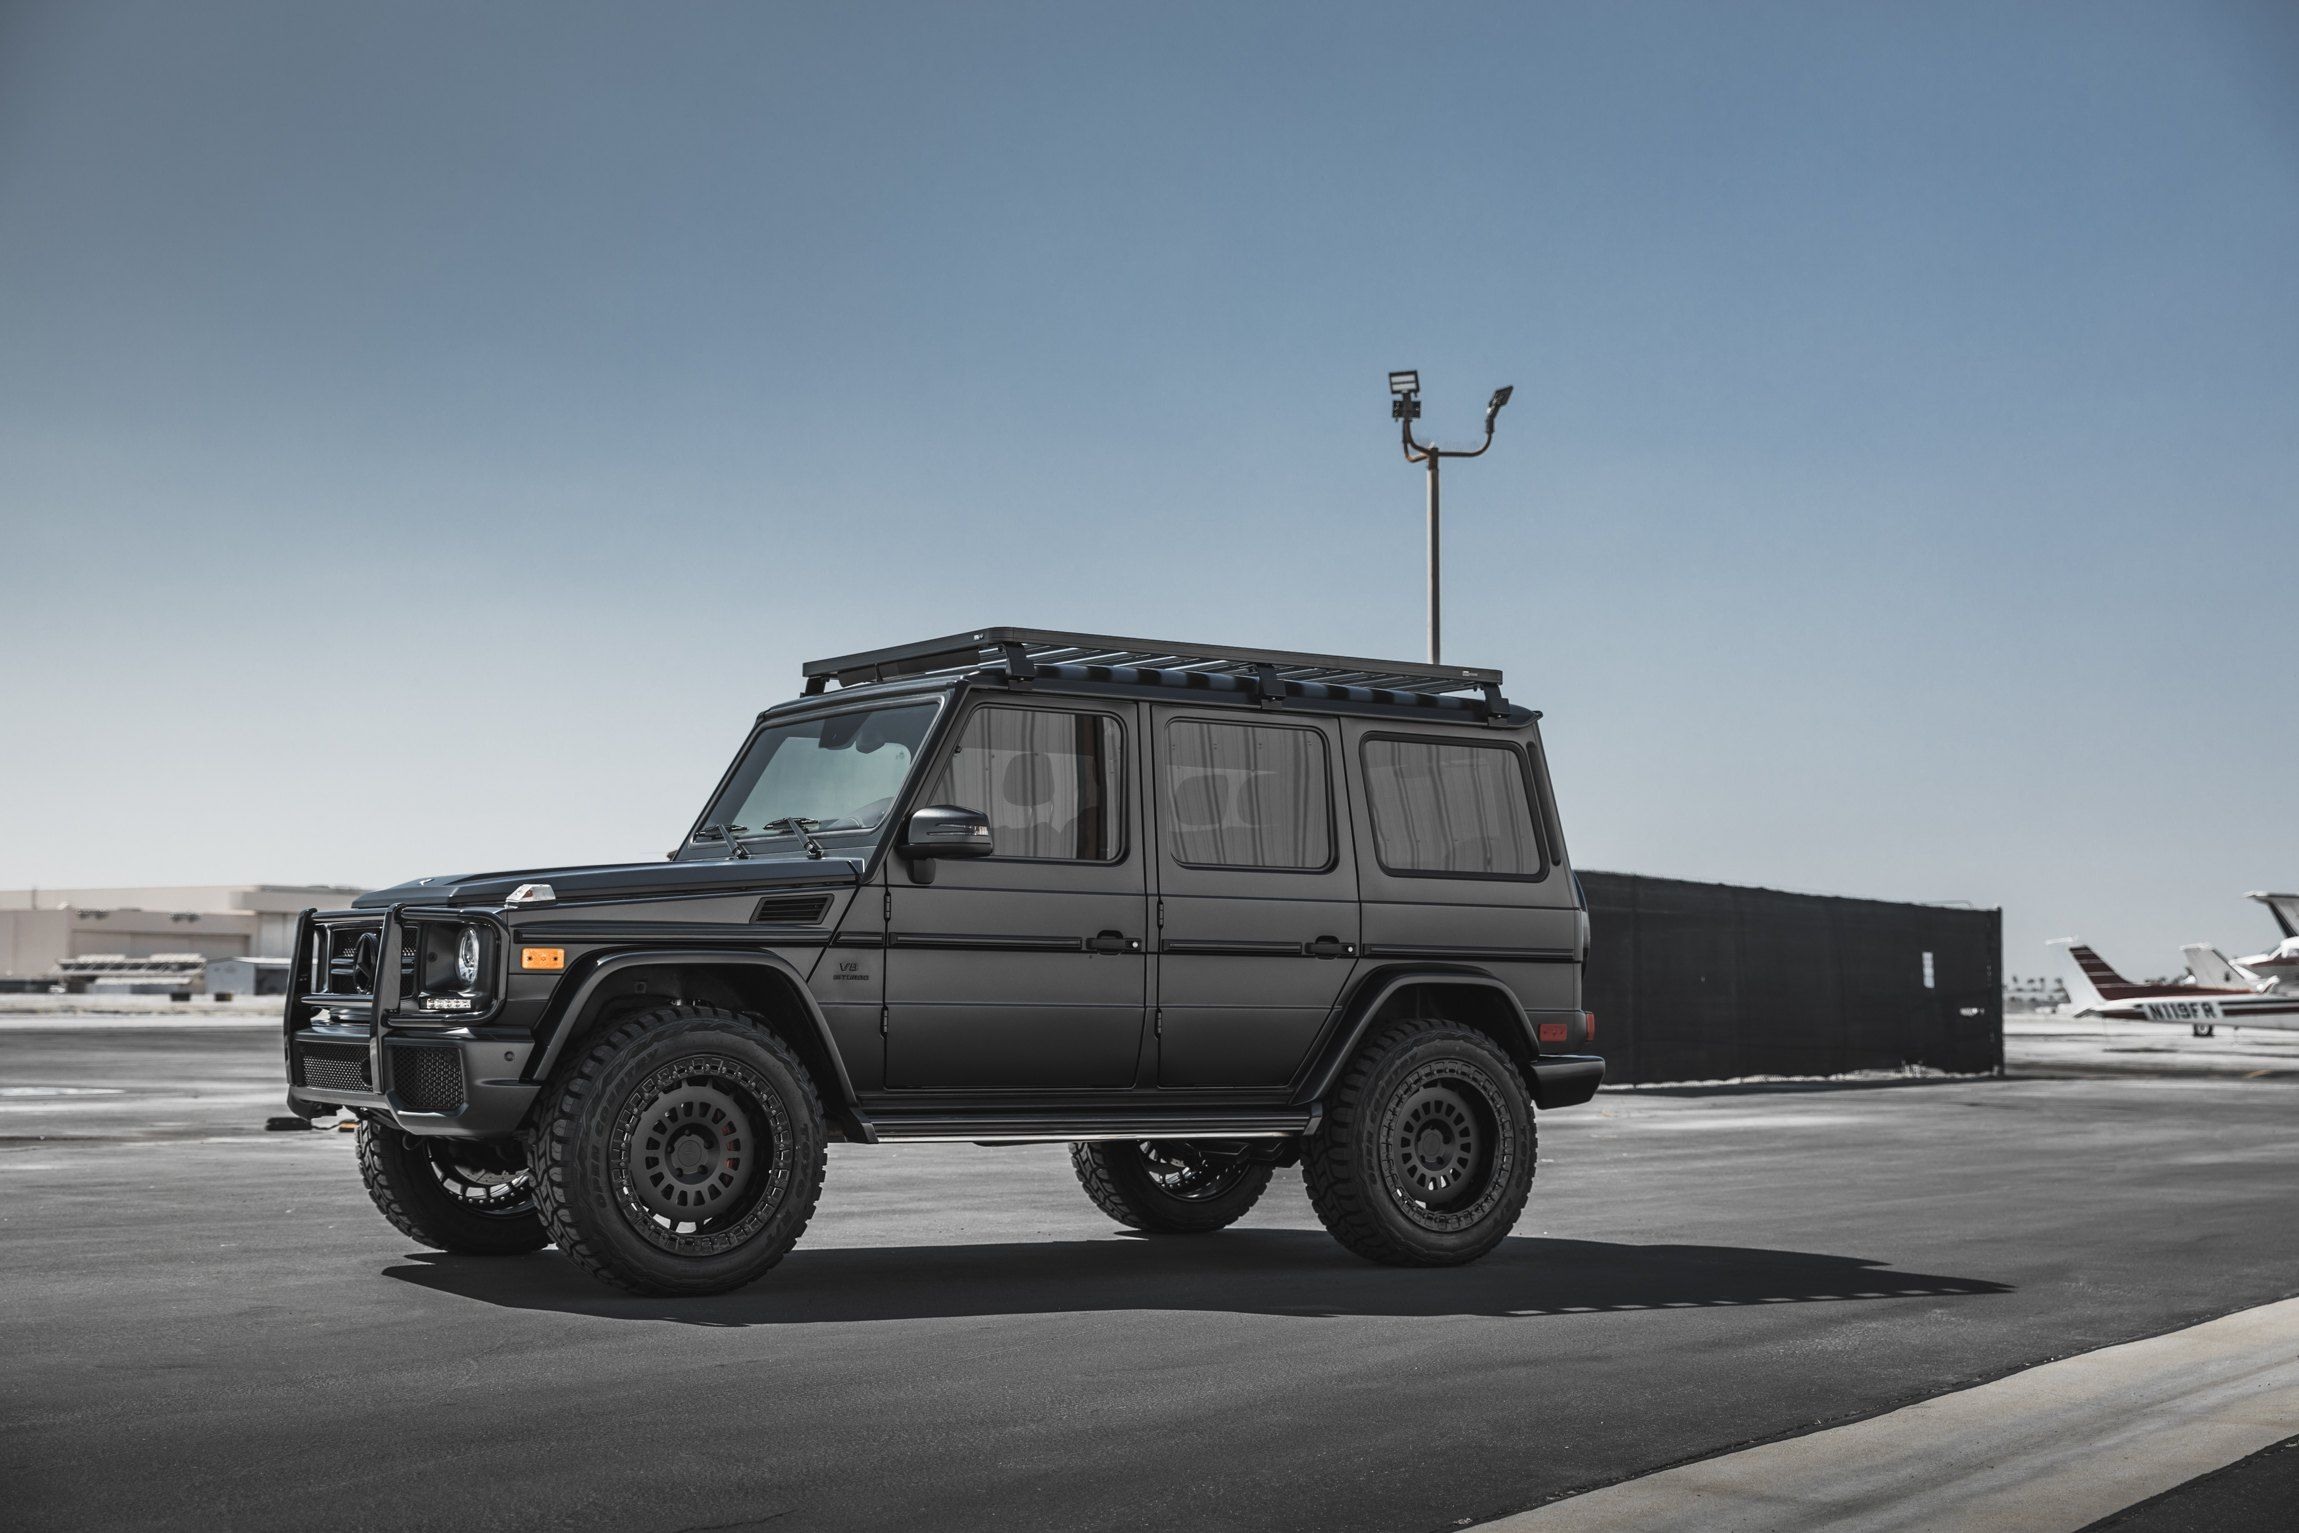 Off Road Mods And Rotiform Wheels On Black Mercedes G Wagon